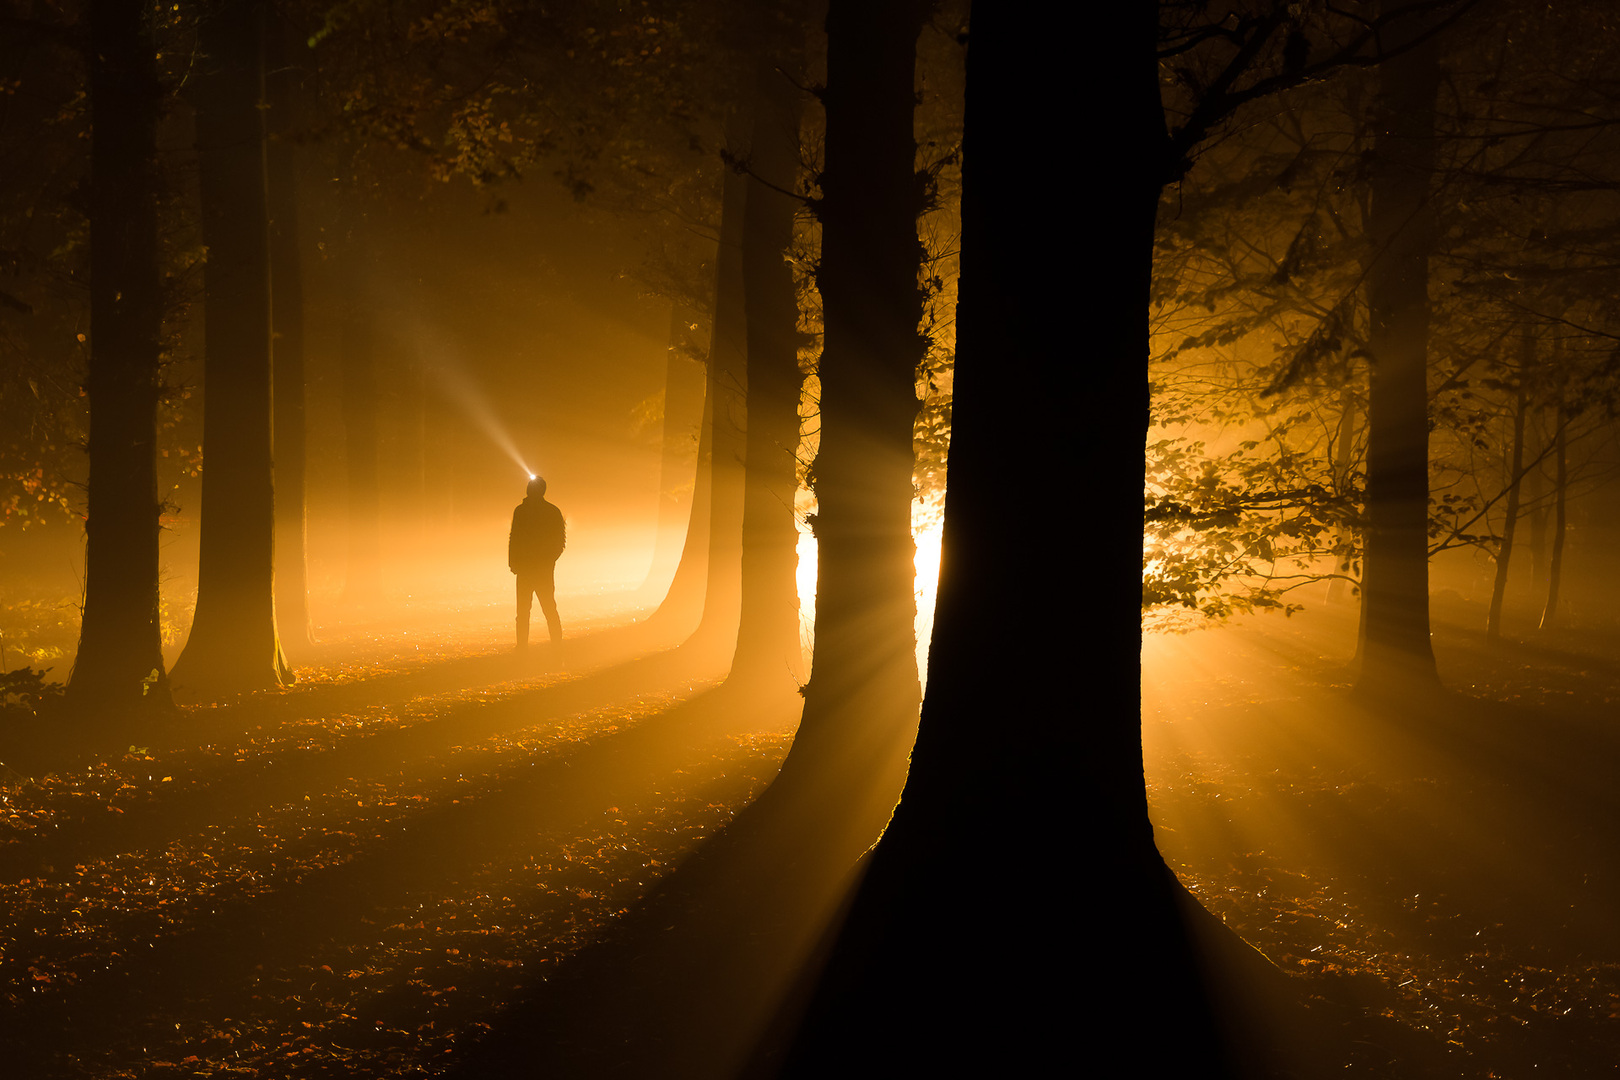 Into Darkness - Woods near Roden, The Netherlands